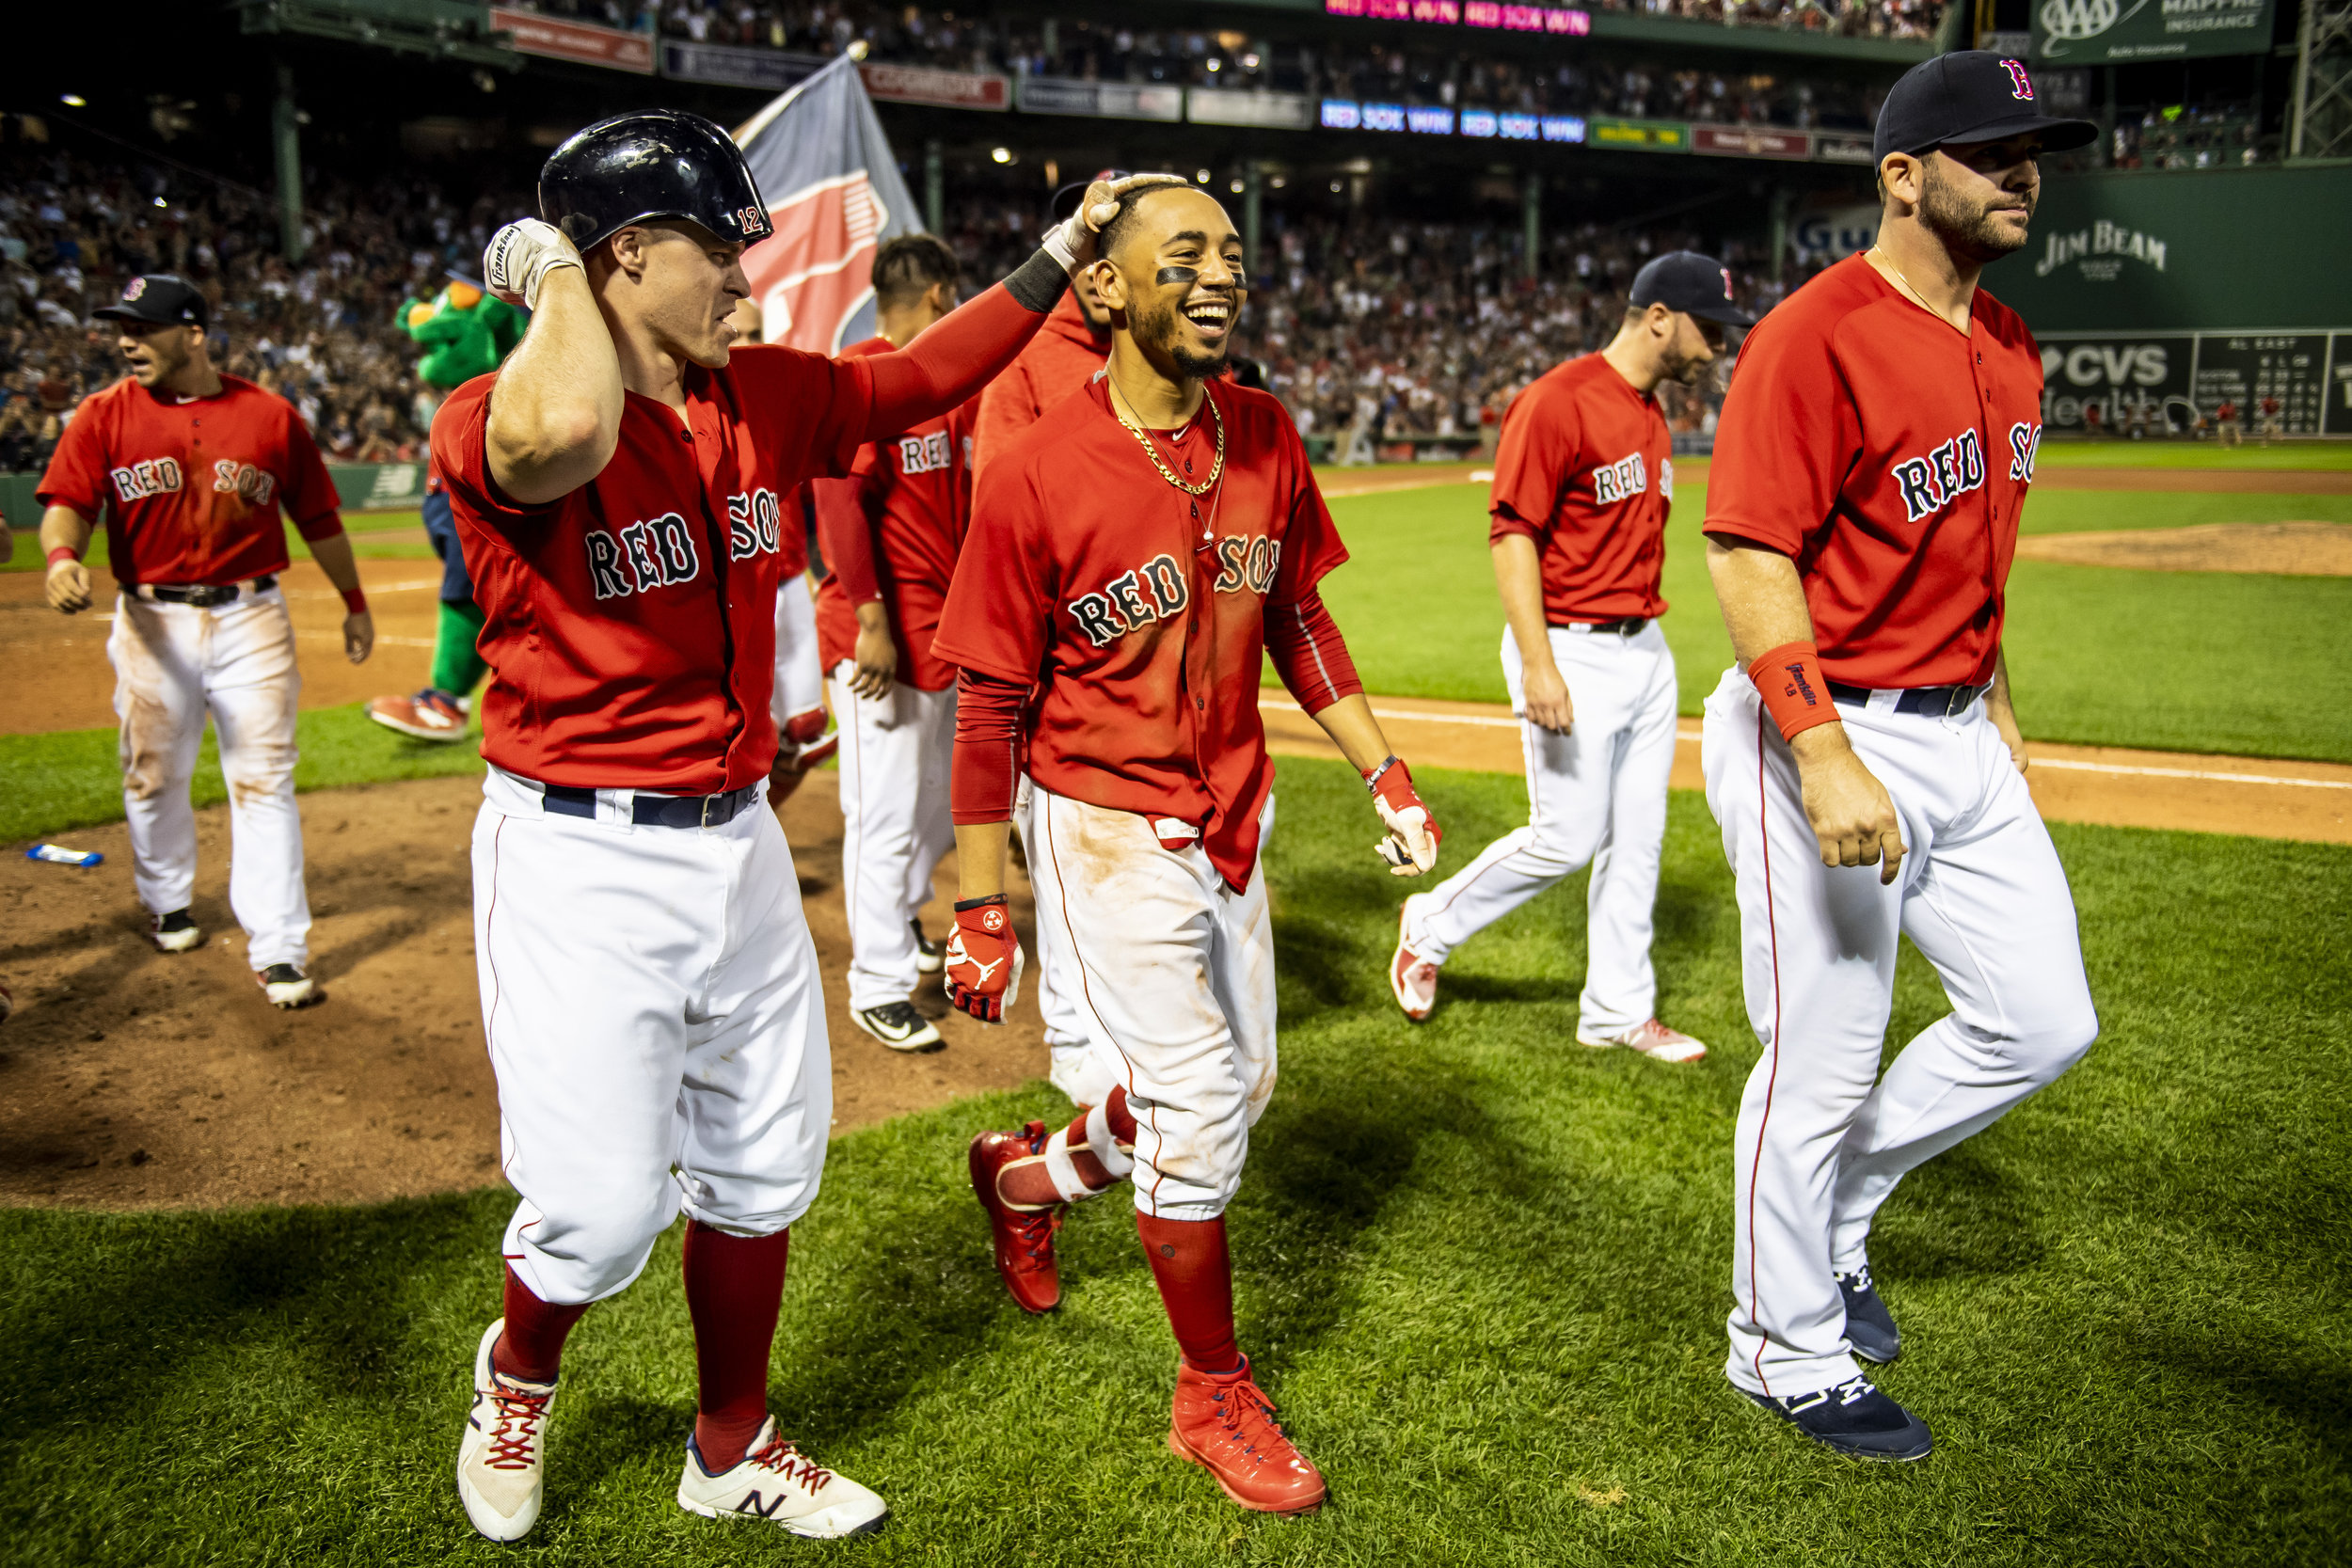 July 26, 2018, Boston, MA: Boston Red Sox outfielder Brock Holt and Boston Red Sox outfielder Mookie Betts walk off the field after Bett's walk-off home run as the Boston Red Sox defeated the Minnesota Twins at Fenway Park in Boston, Massachusetts on Friday, July 27, 2018. (Photo by Matthew Thomas/Boston Red Sox)